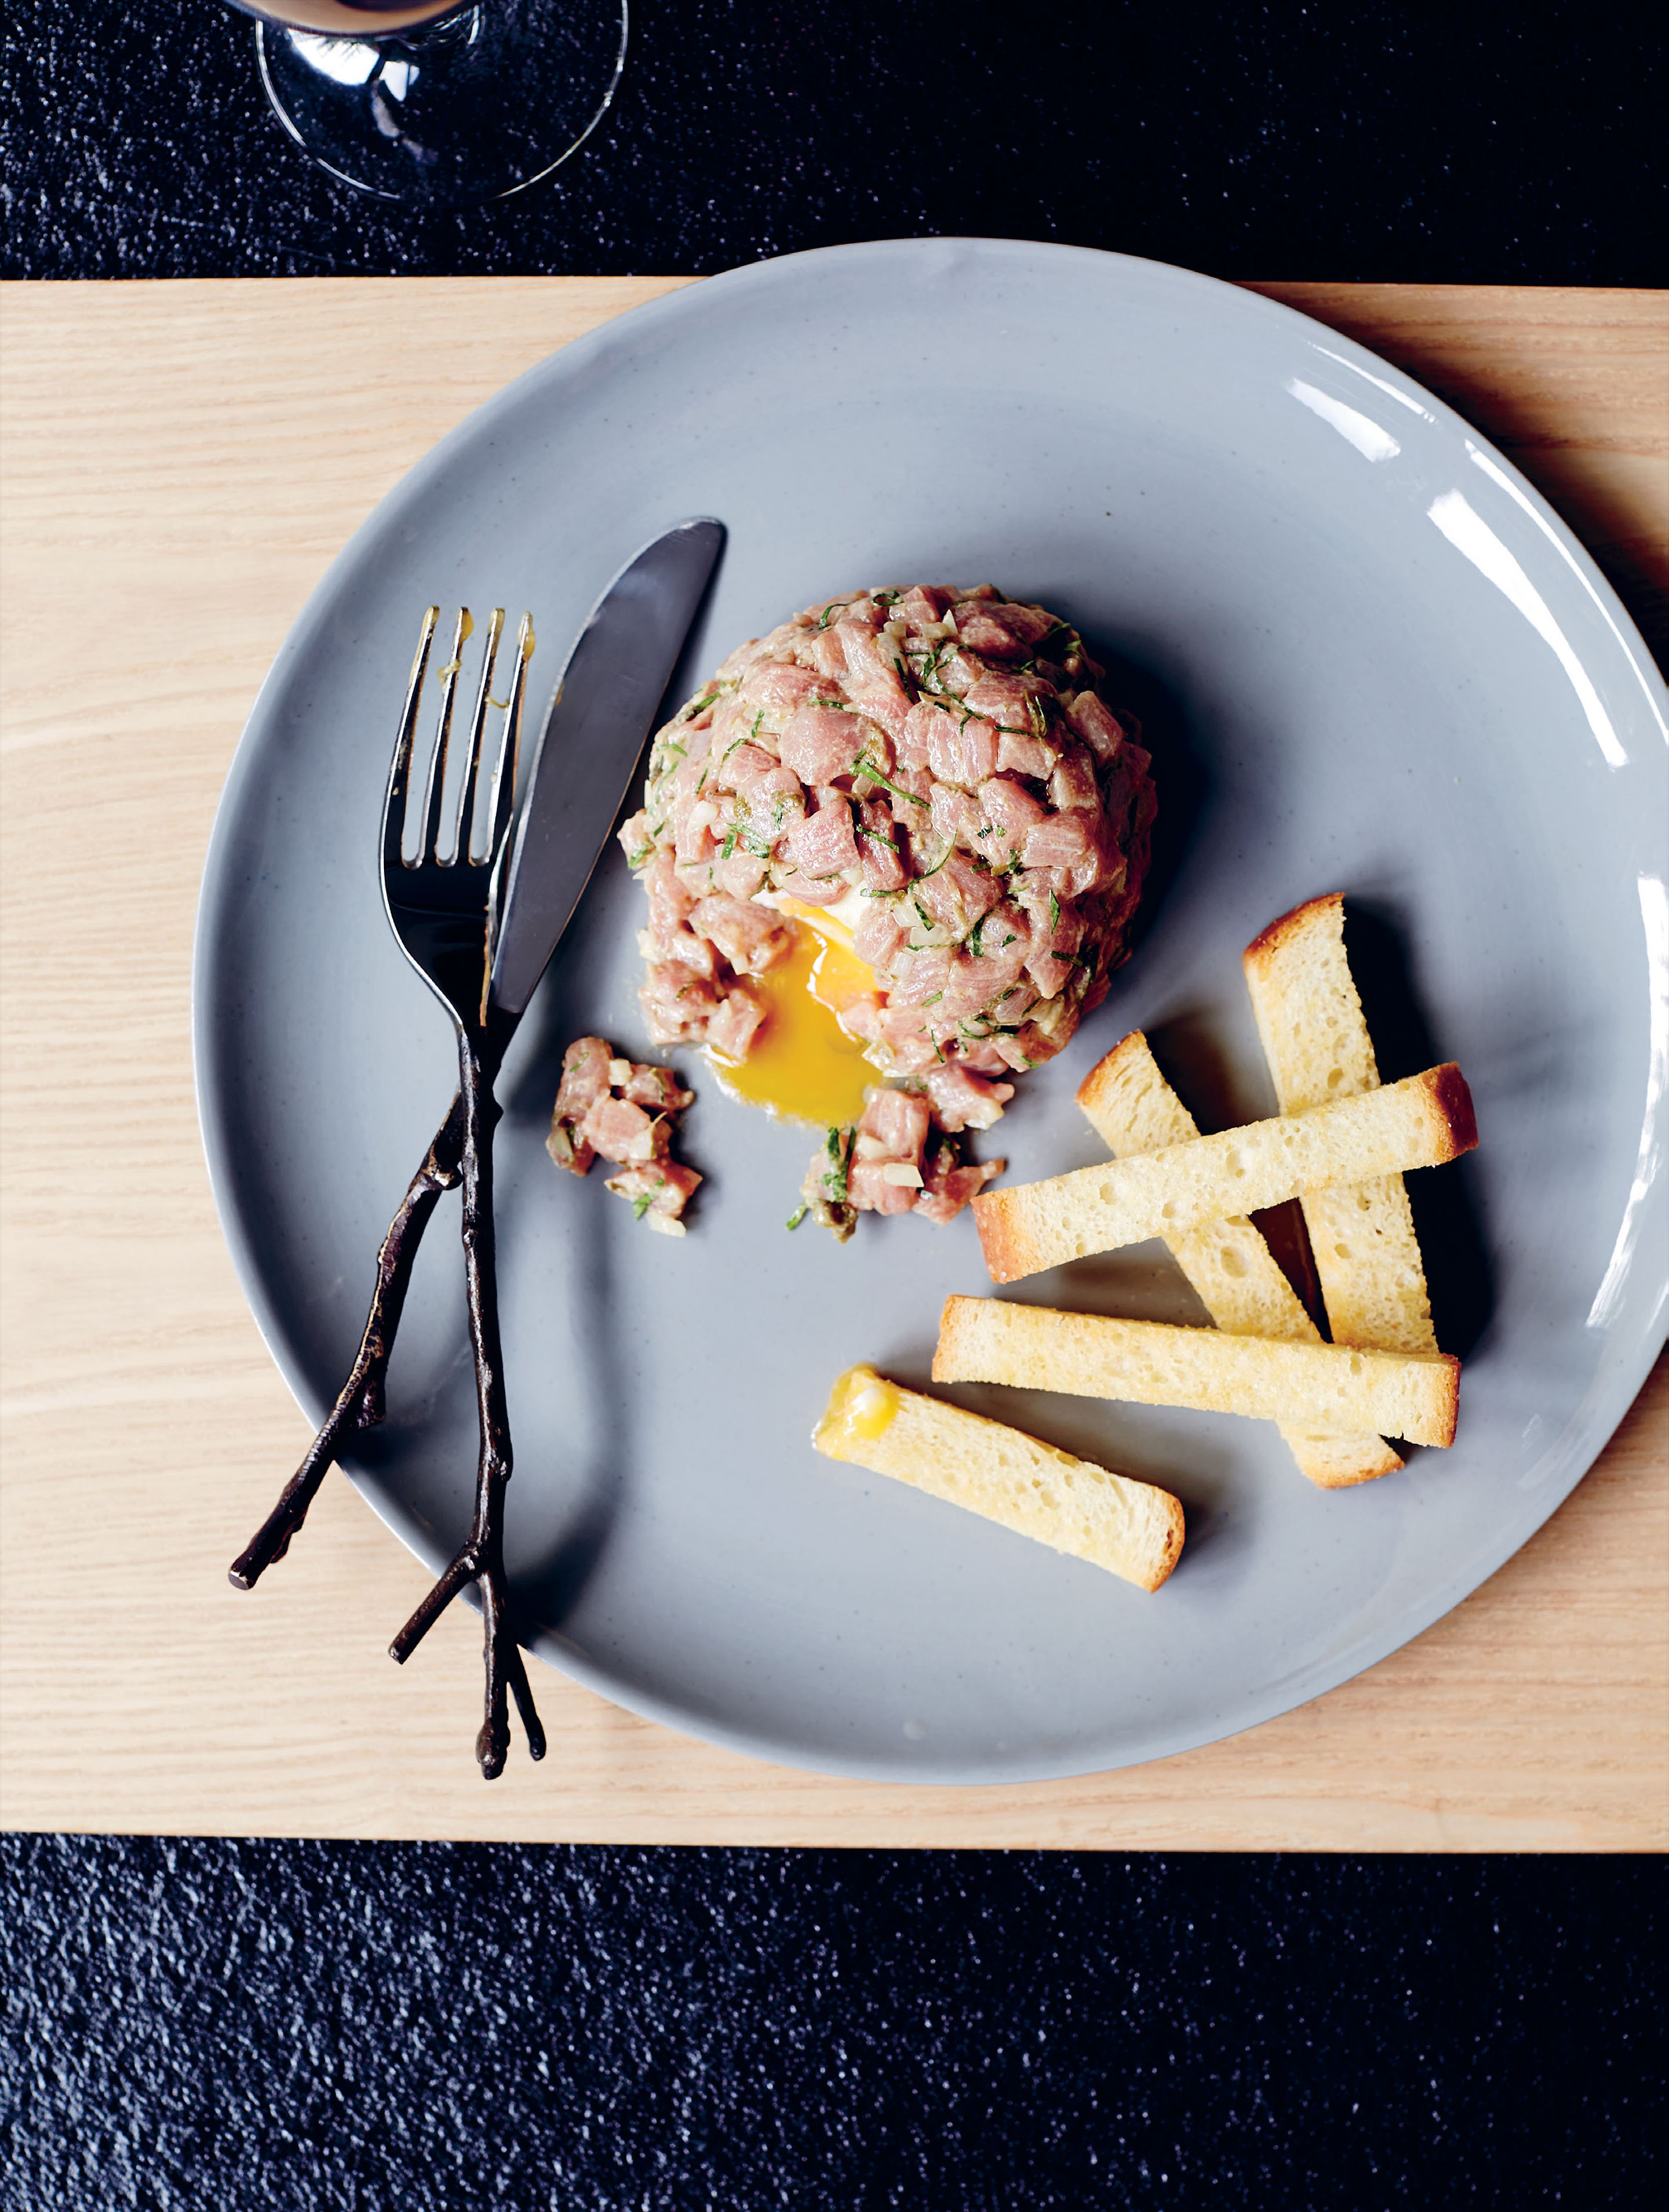 Veal tartare with soft-boiled egg & brioche soldiers